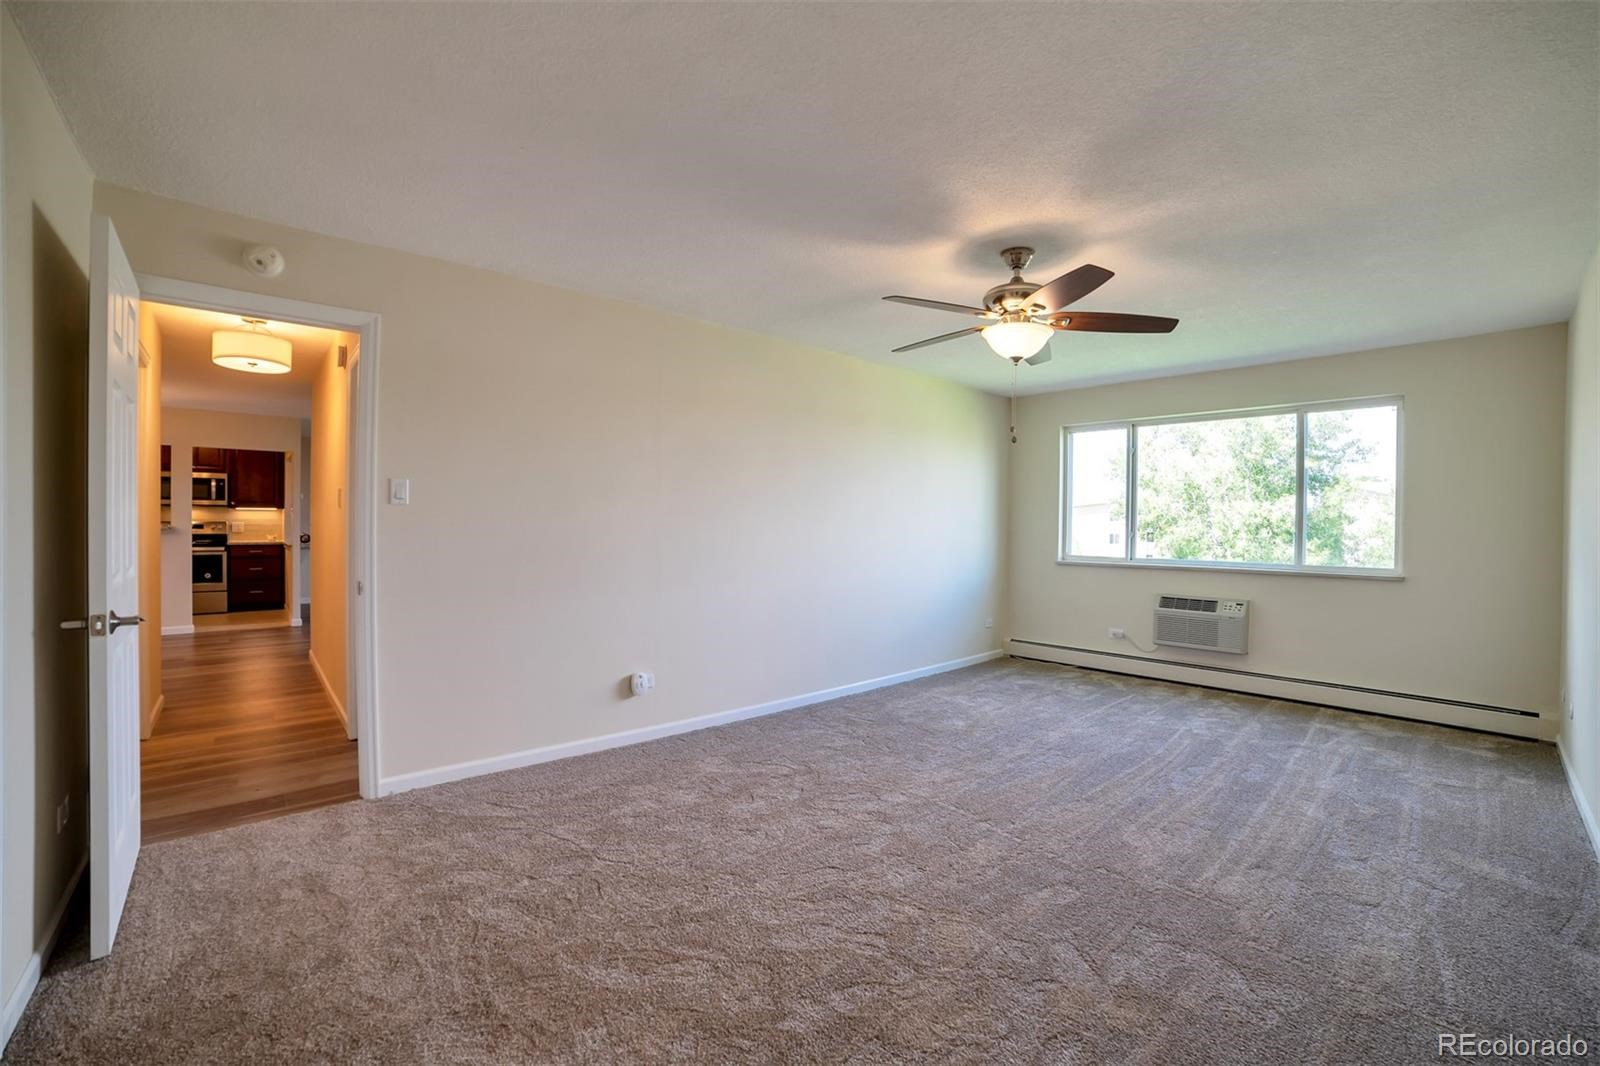 MLS# 7079914 - 11 - 645 S Alton Way #3C, Denver, CO 80247